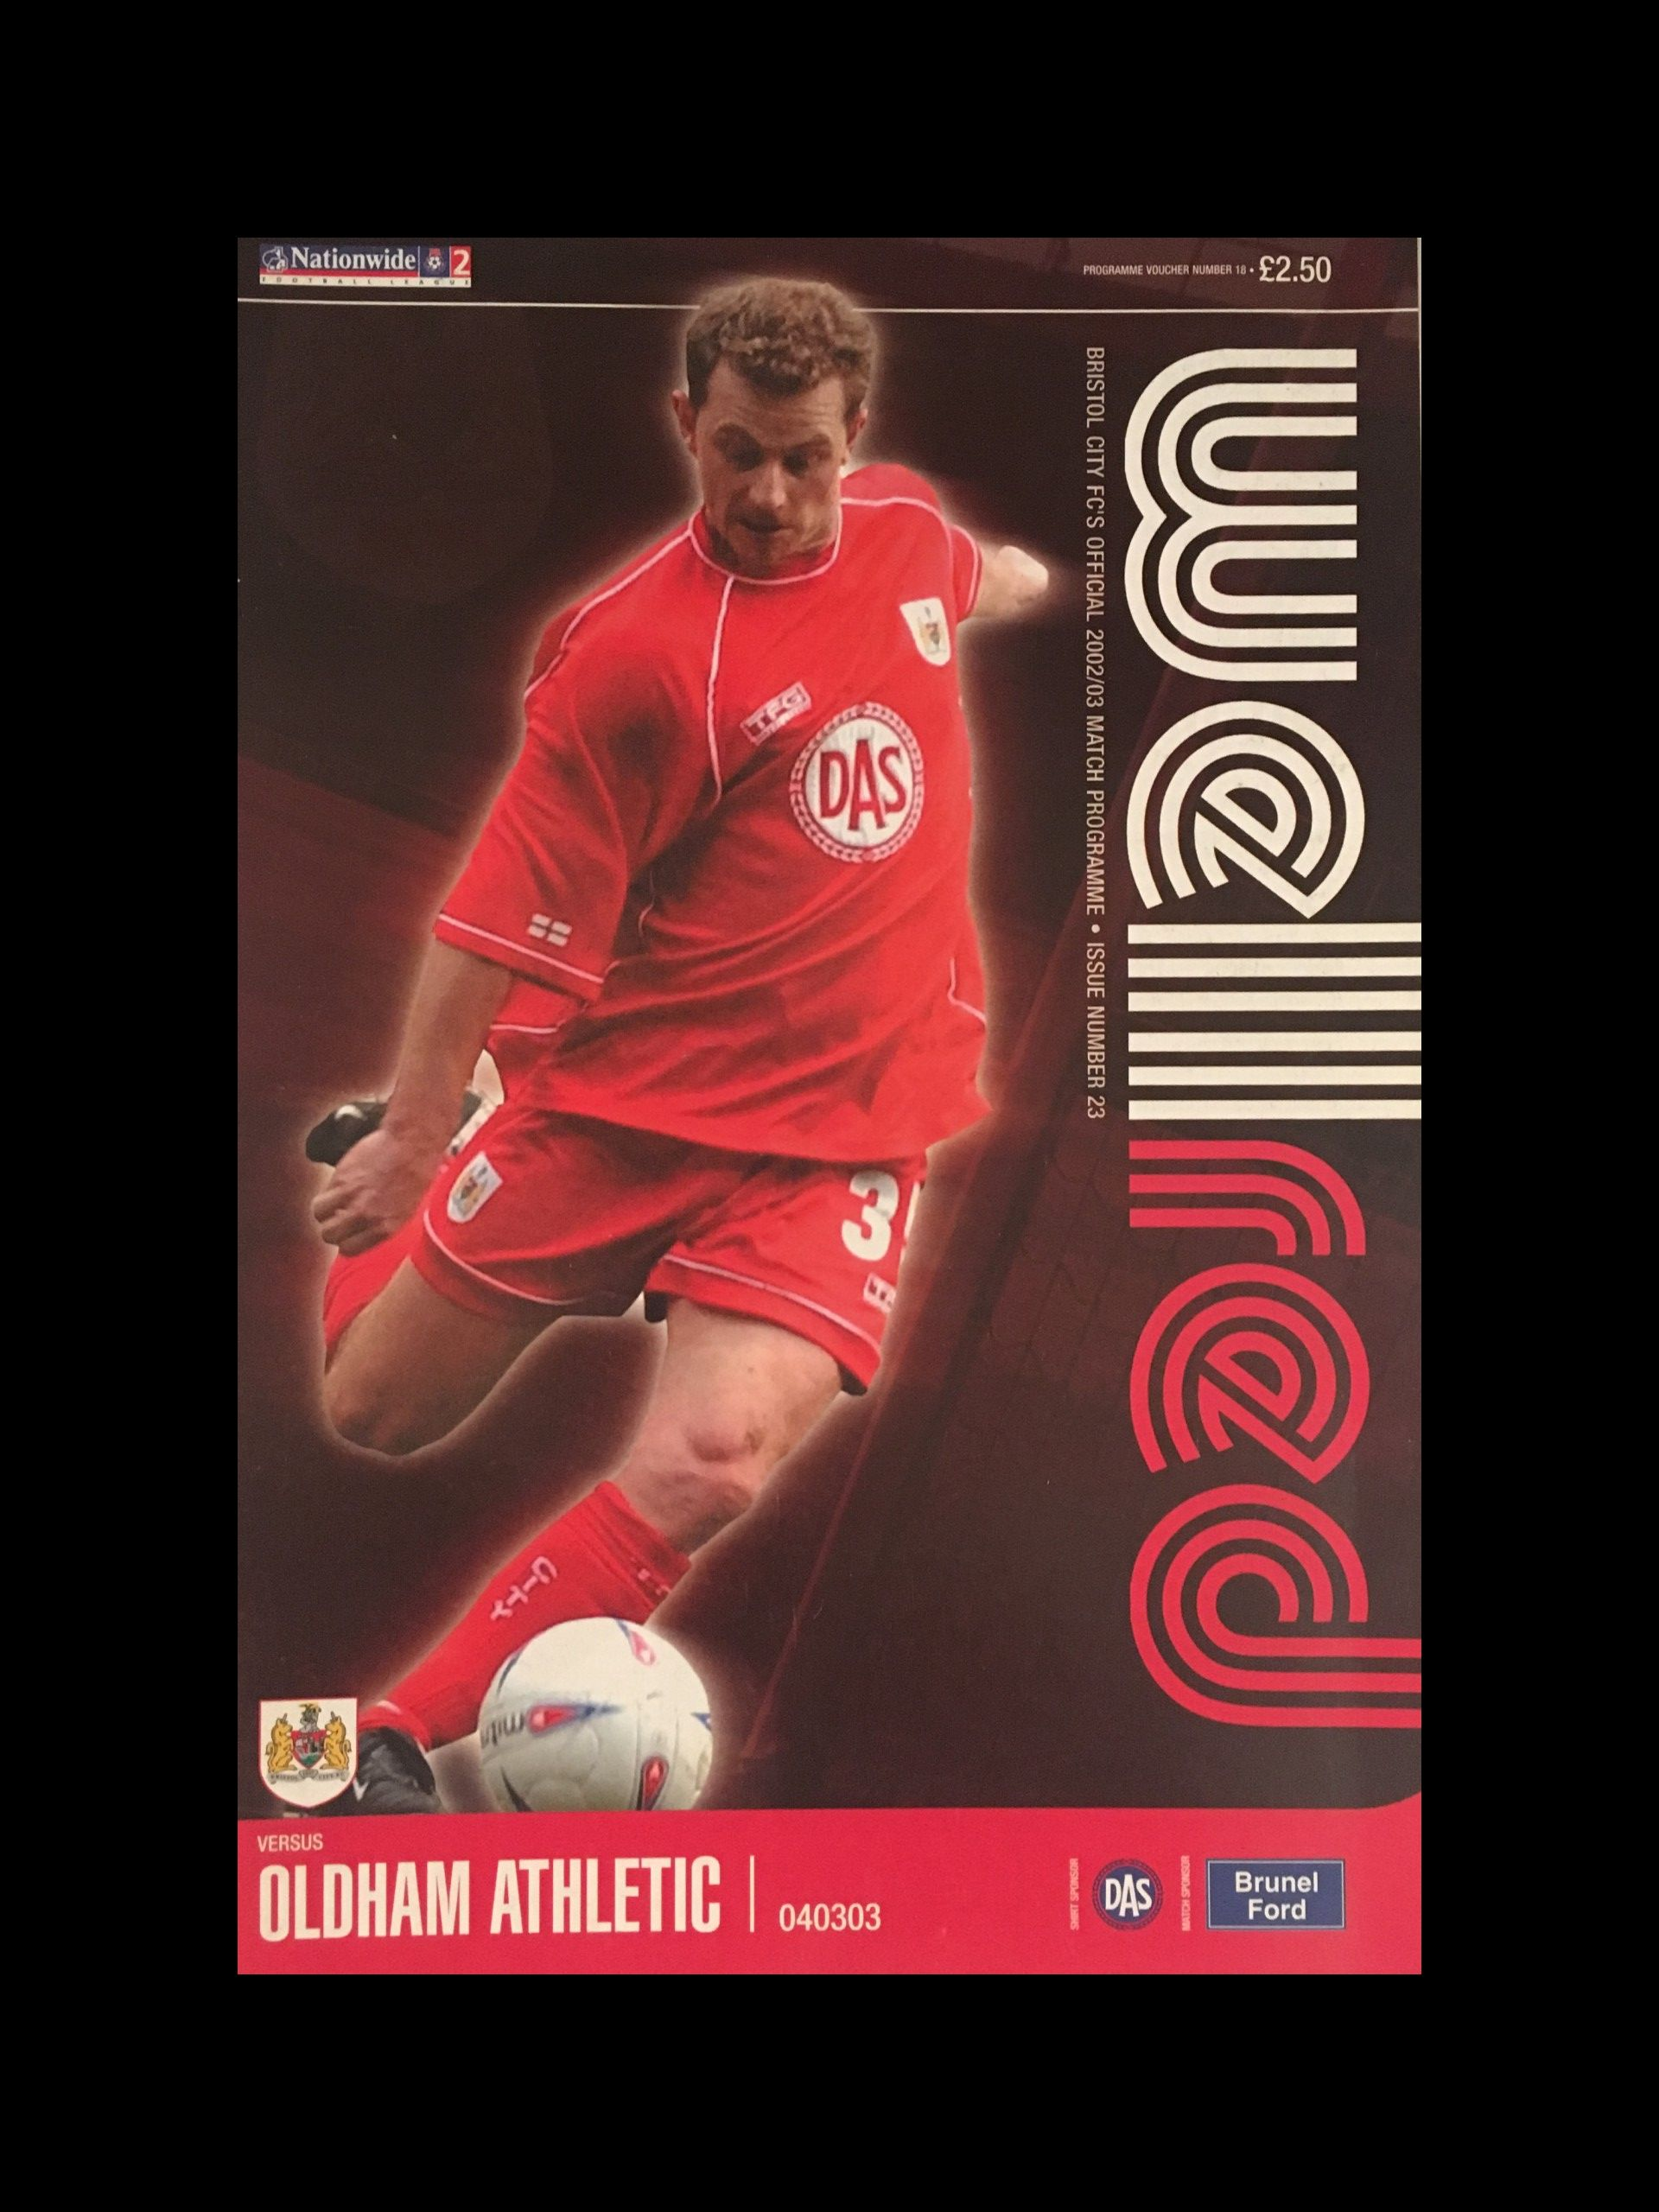 Bristol City v Oldham Athletic 04-03-2003 Programme